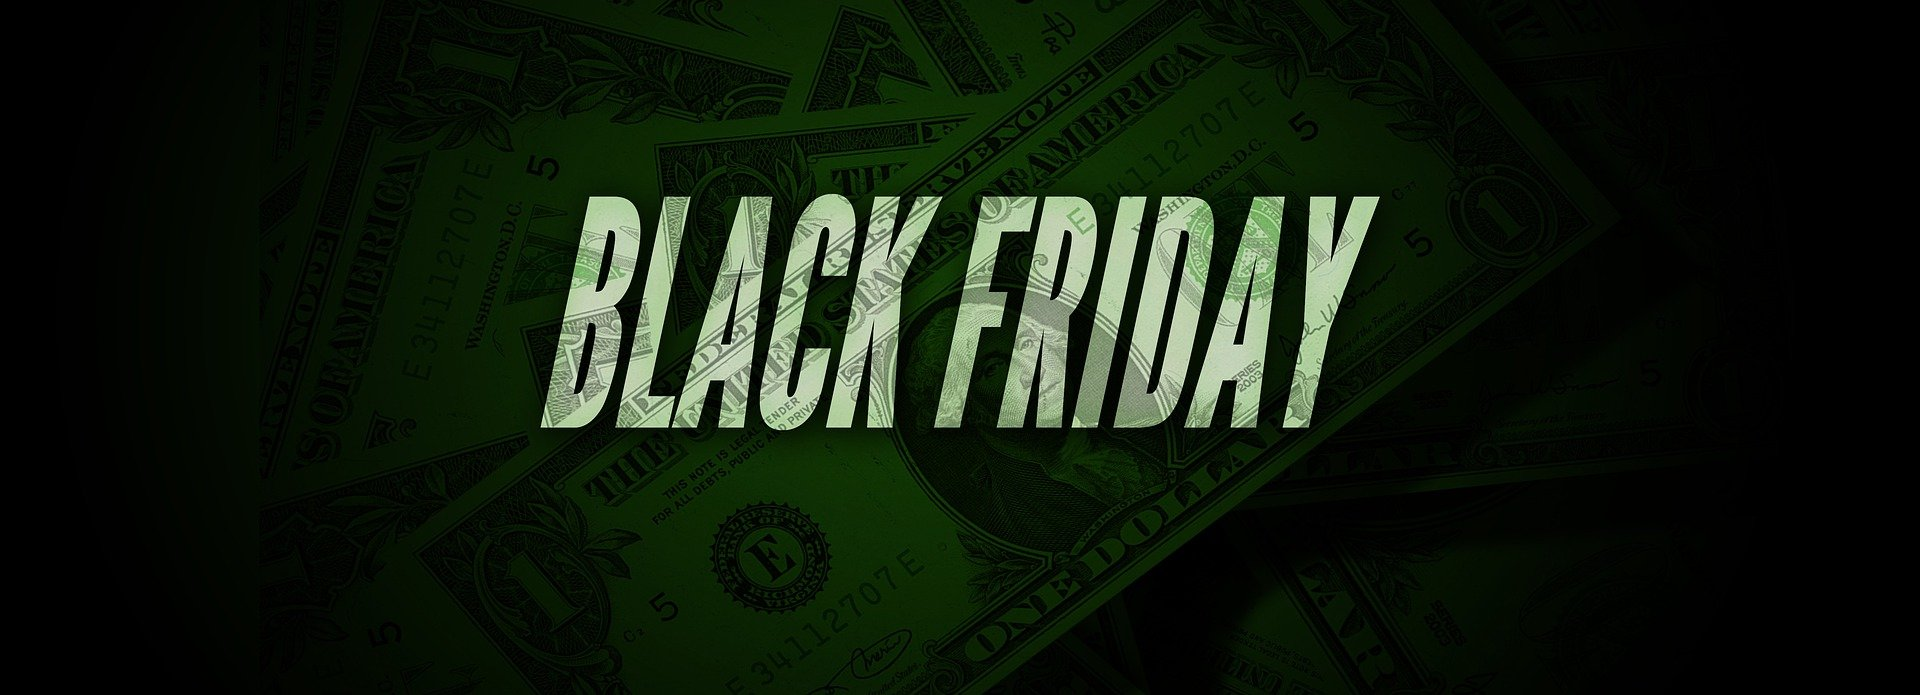 black-friday-4488821_1920